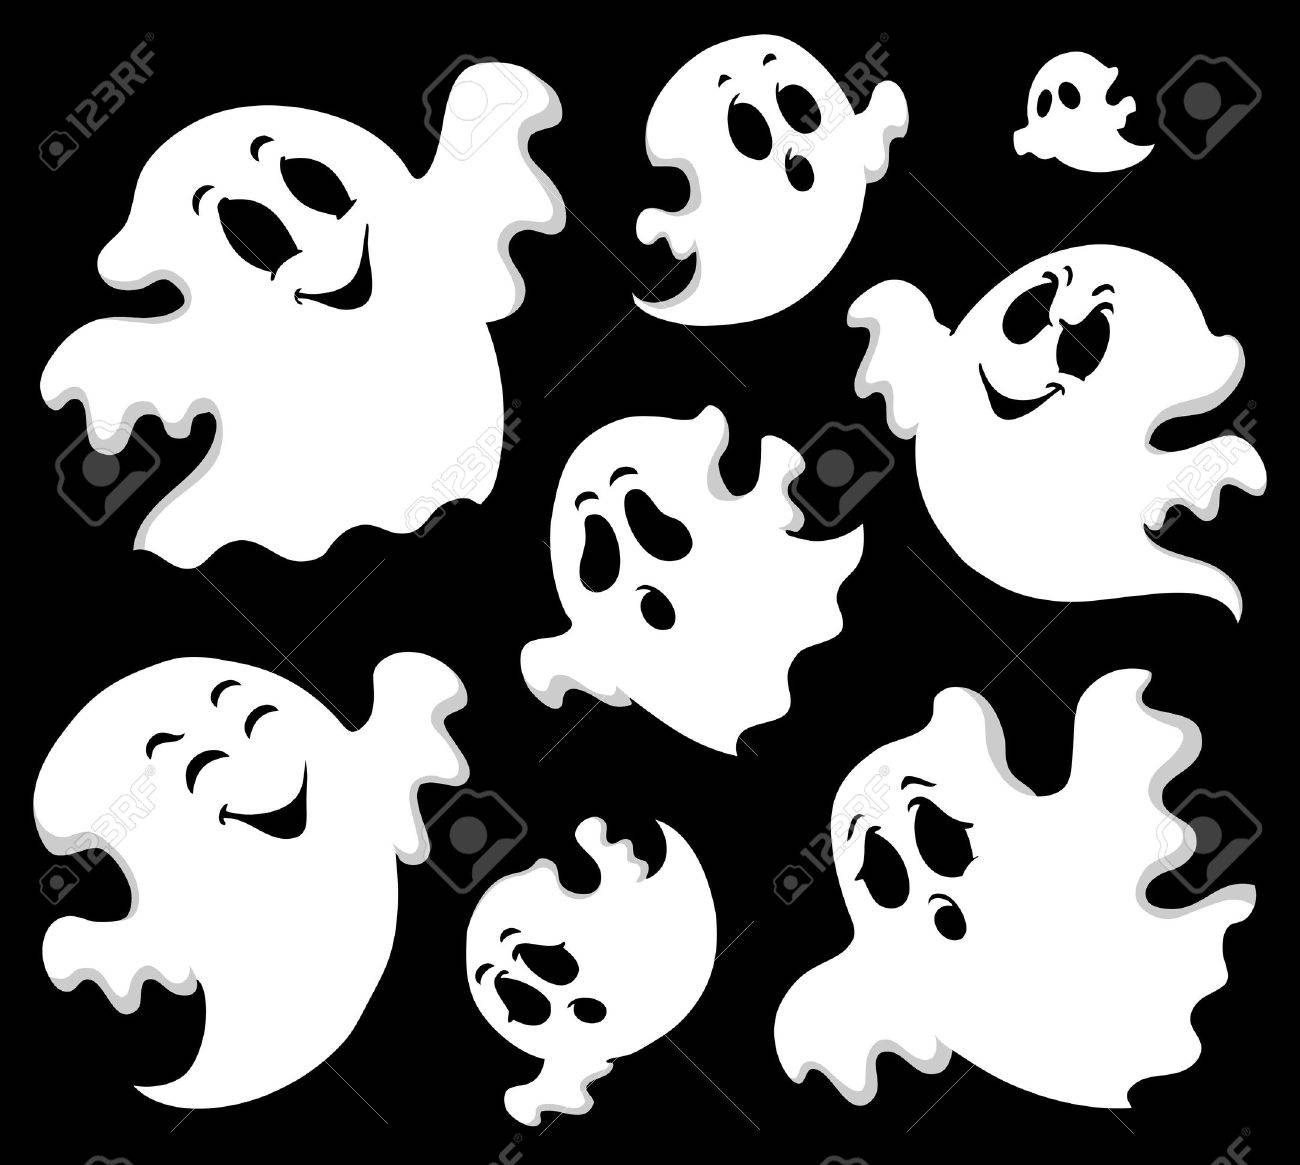 Ghost theme image 1 illustration